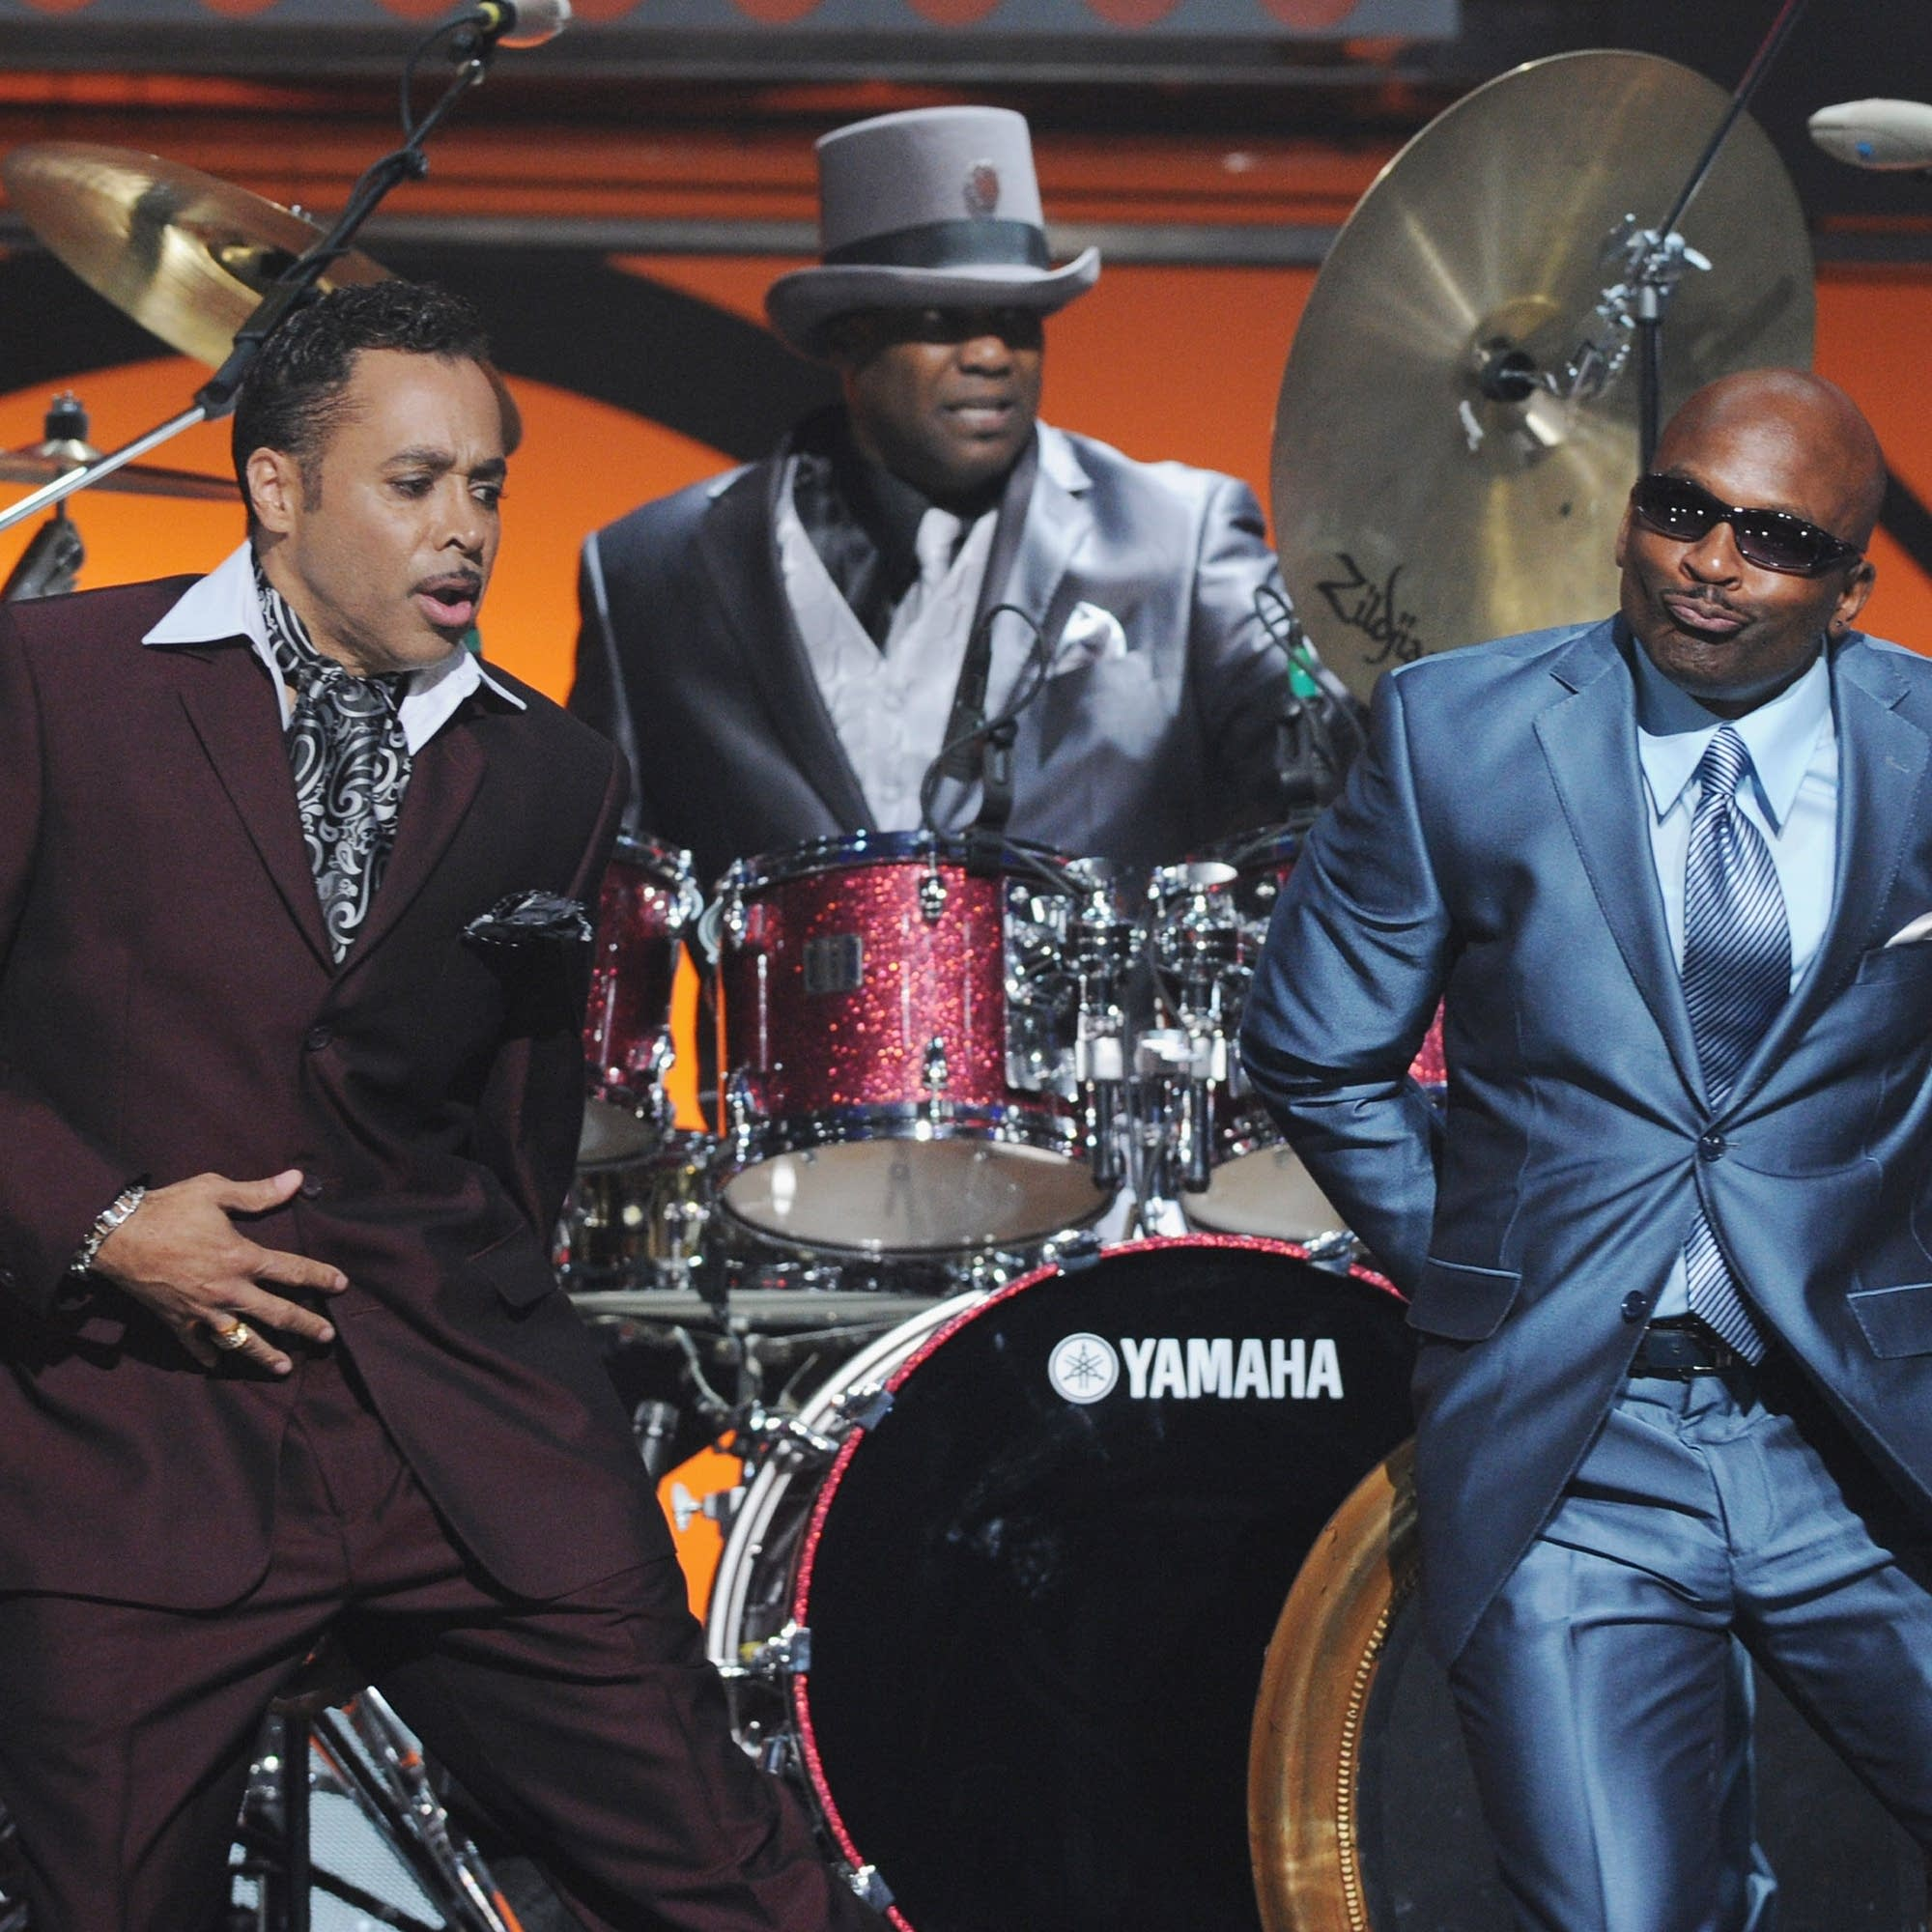 Morris Day, Jellybean Johnson and Jerome Benton of The Time